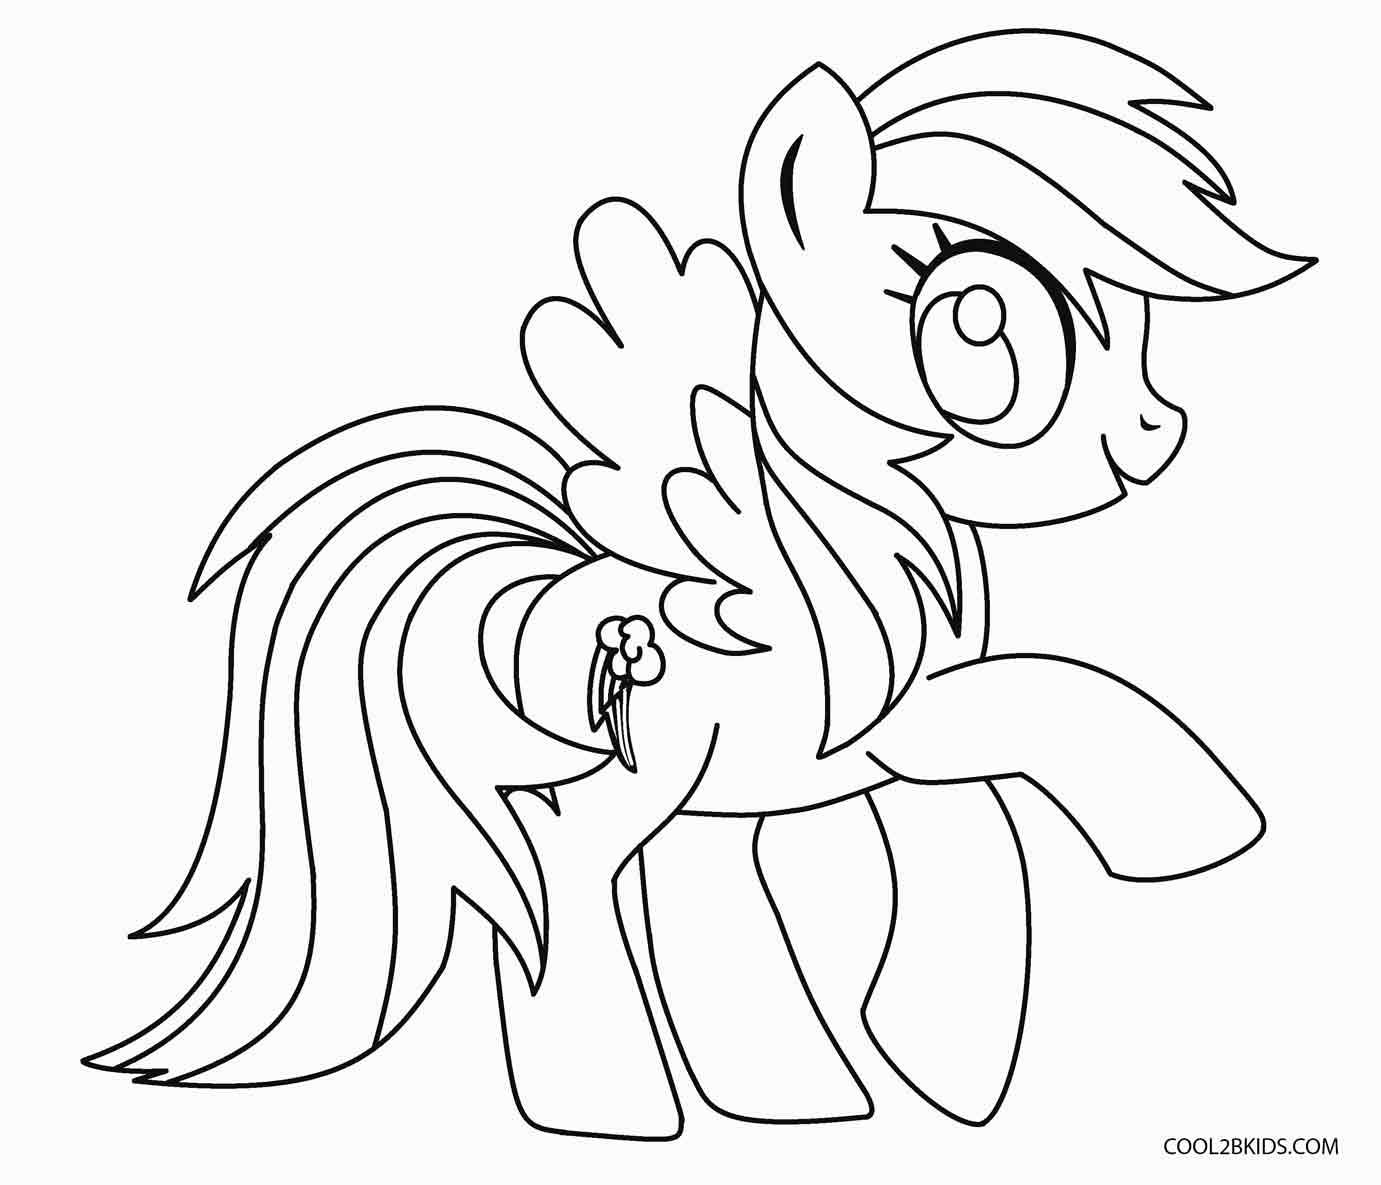 rainbow dash colouring pages my little pony rainbow dash colouring pages coloringsnet colouring dash pages rainbow